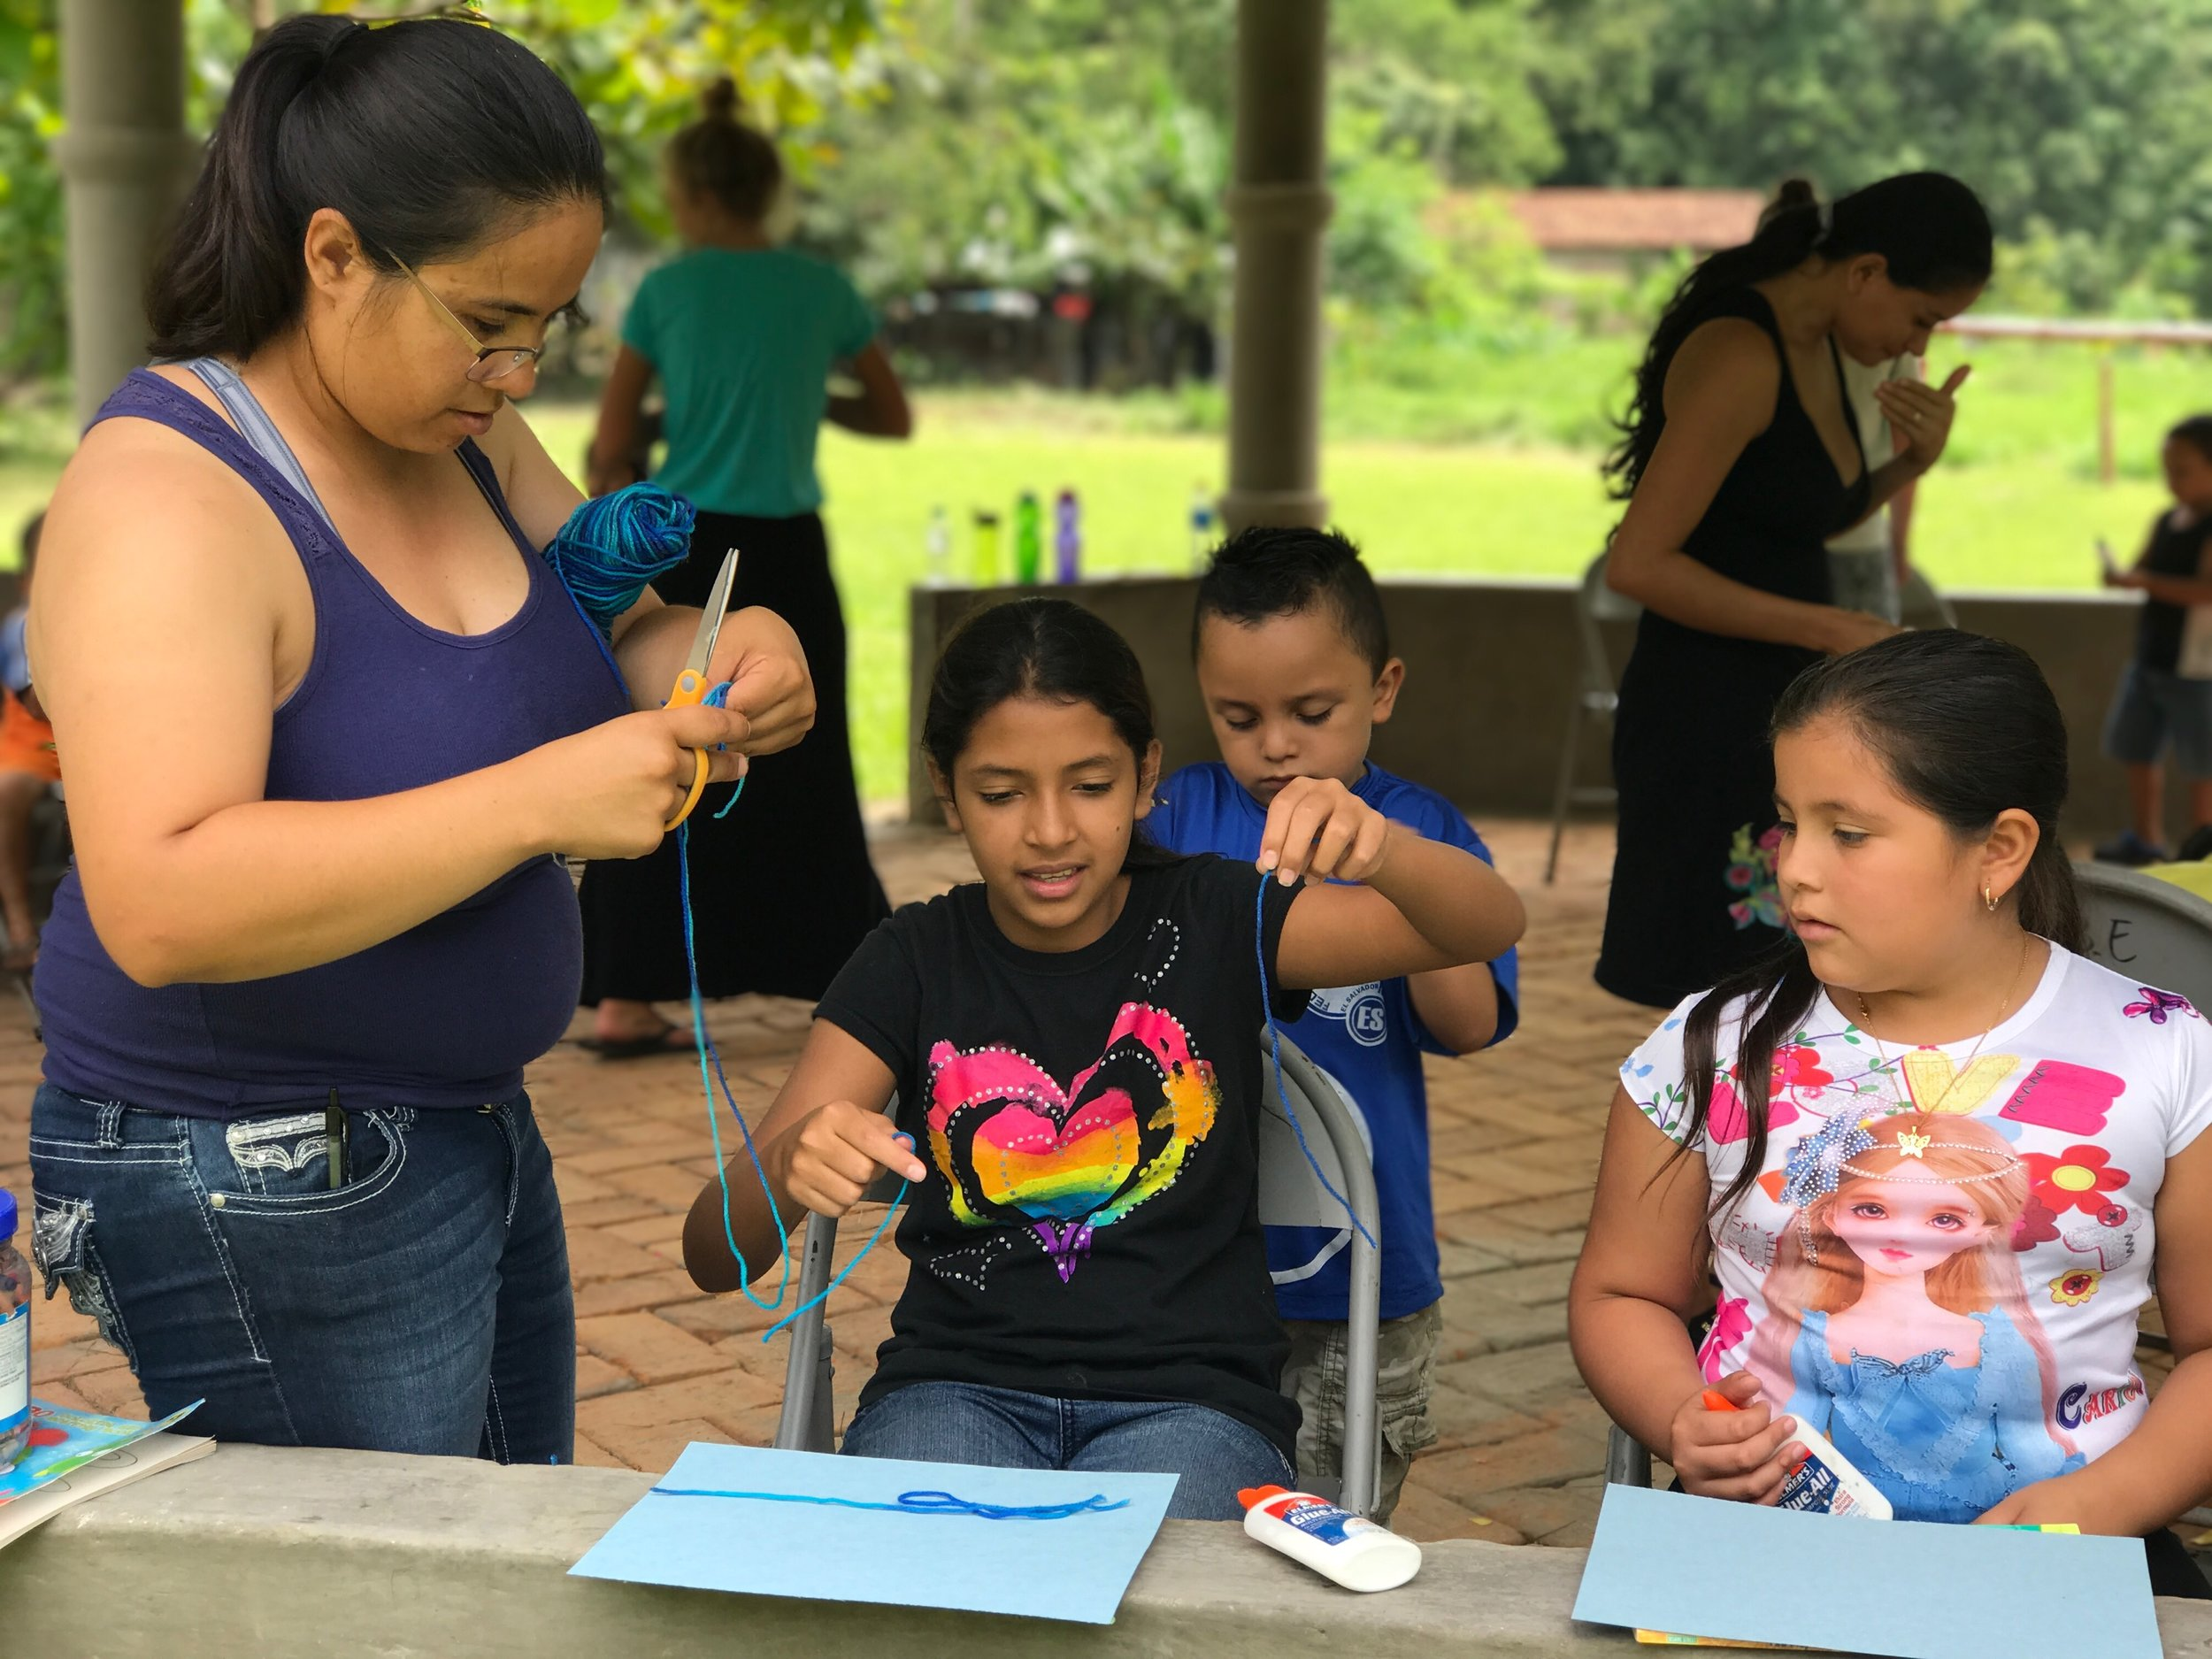 Kid's camps that engage children in learning skills and building character give them productive summer activities to engage in.